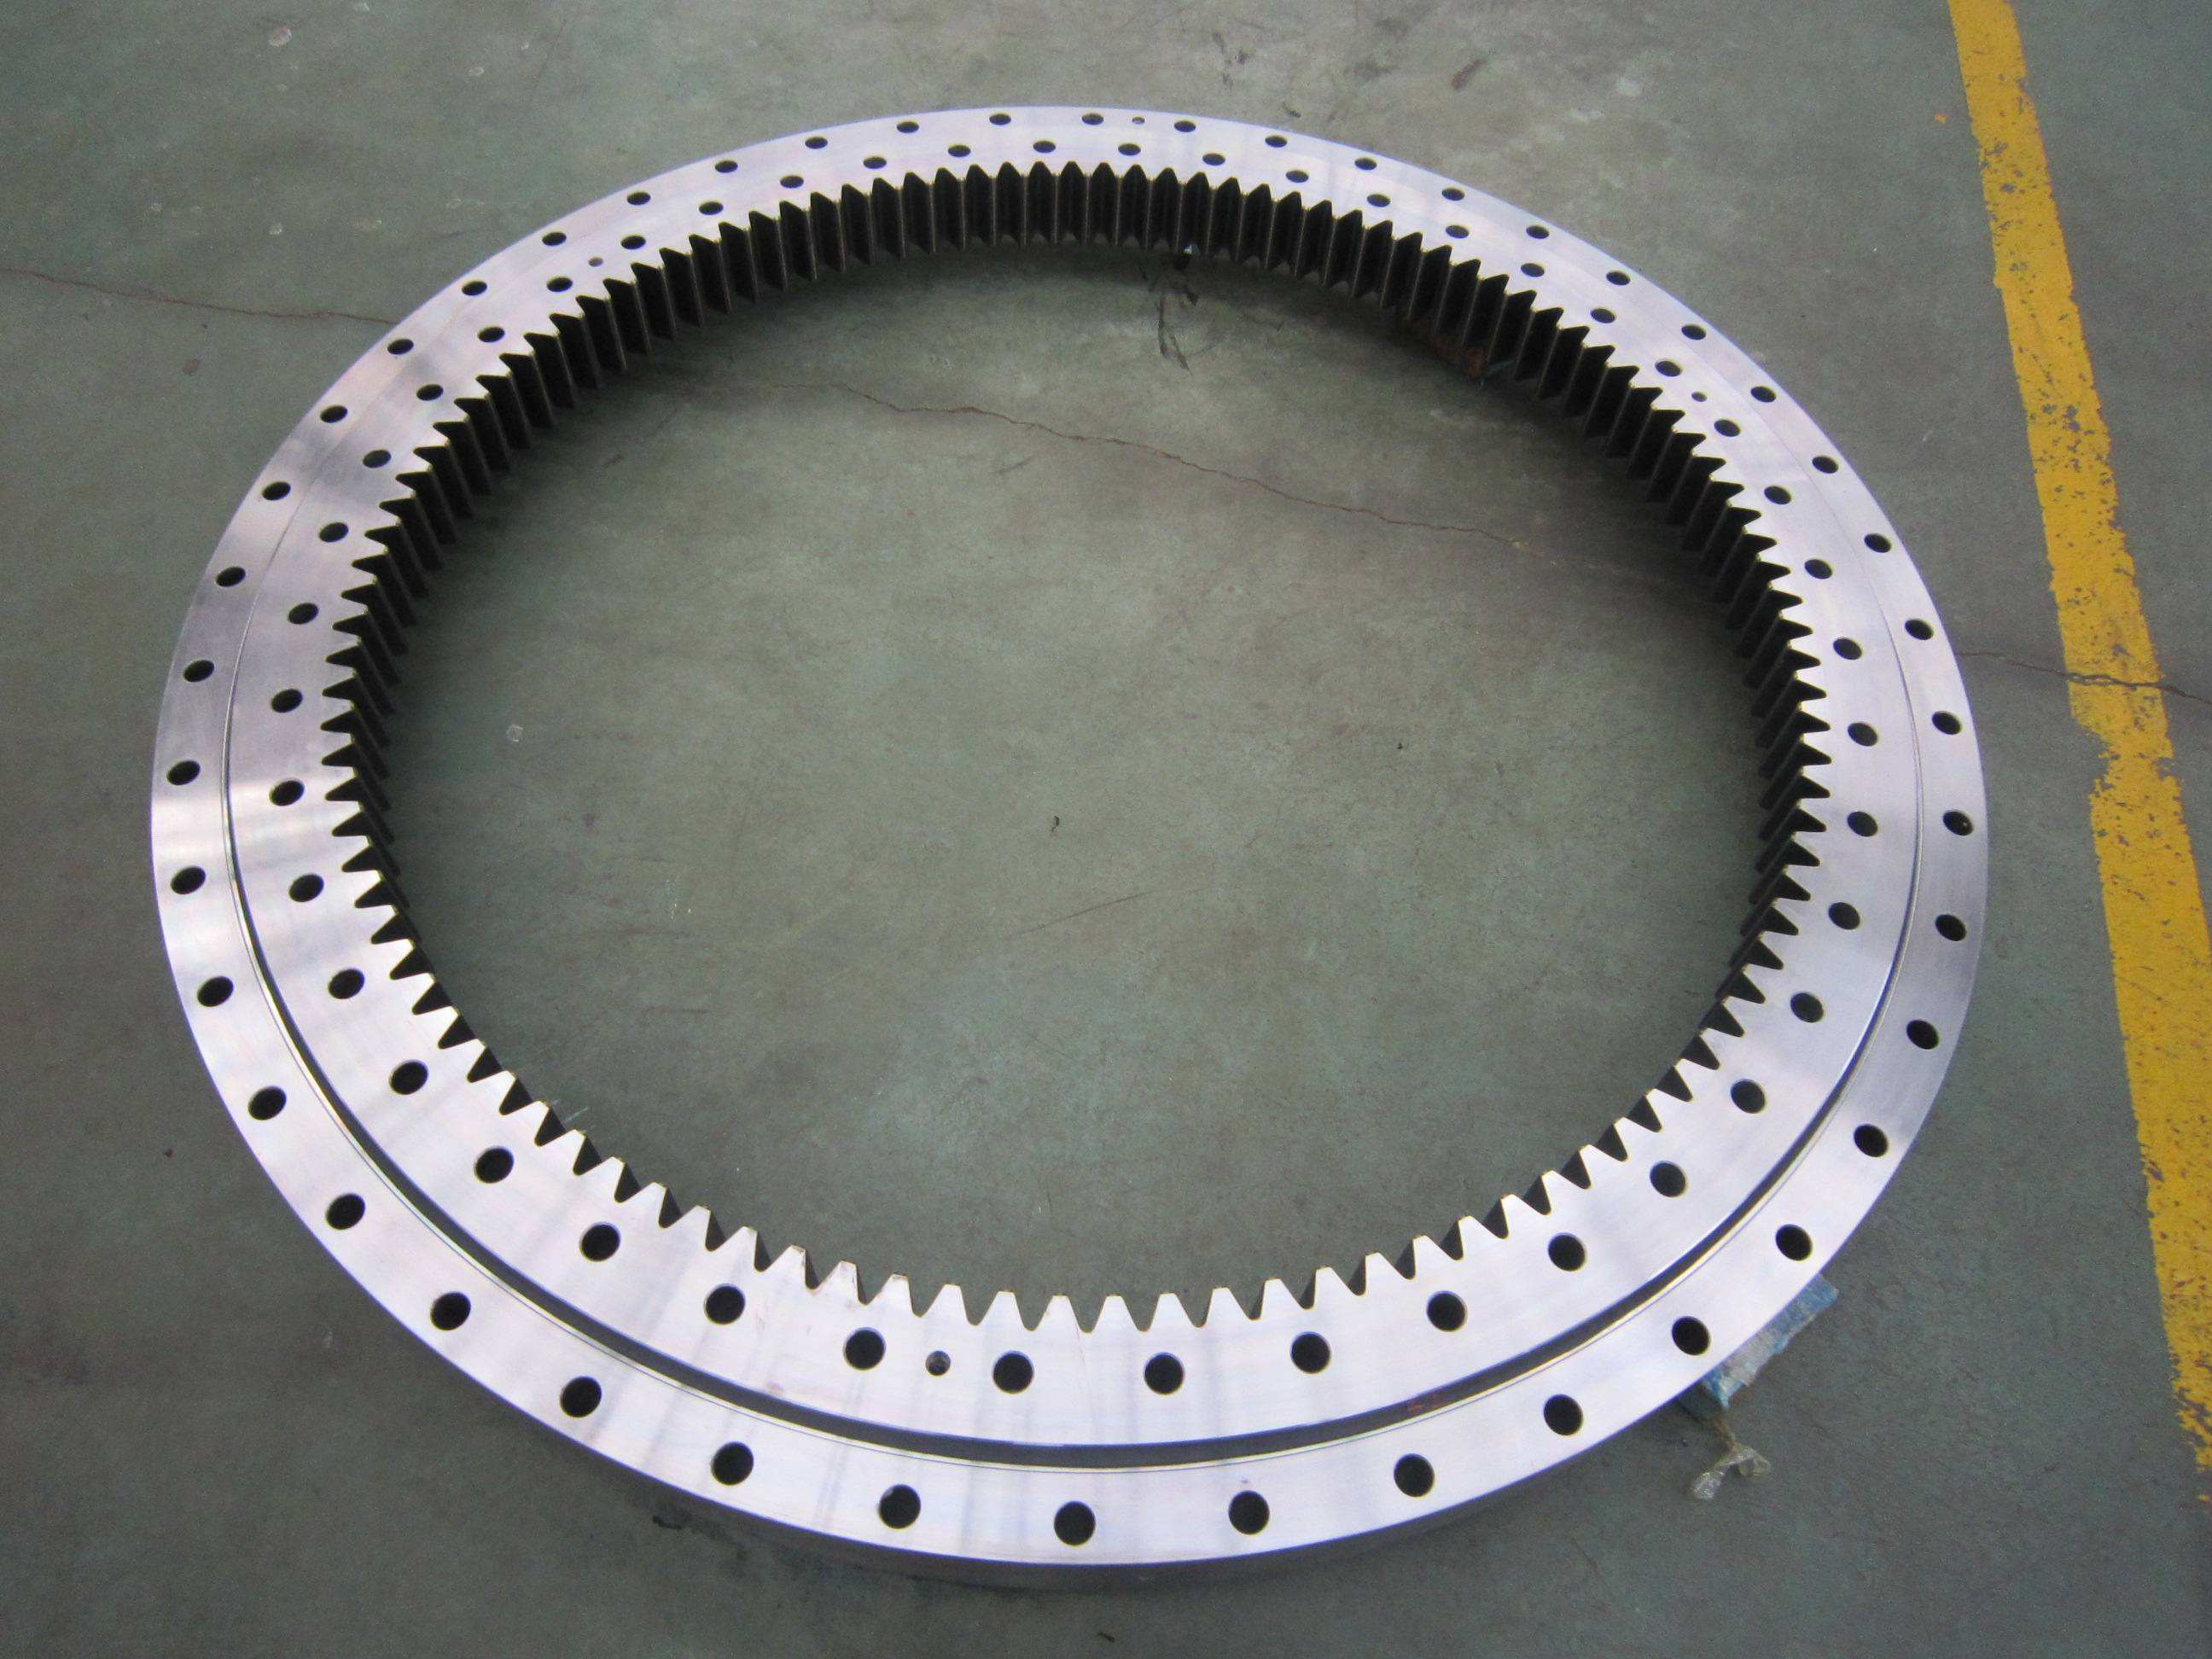 Slewing Bearing Type And External Gear Only Gear Options Best Price Slewing ring SK04N2 SK041 SK07-1